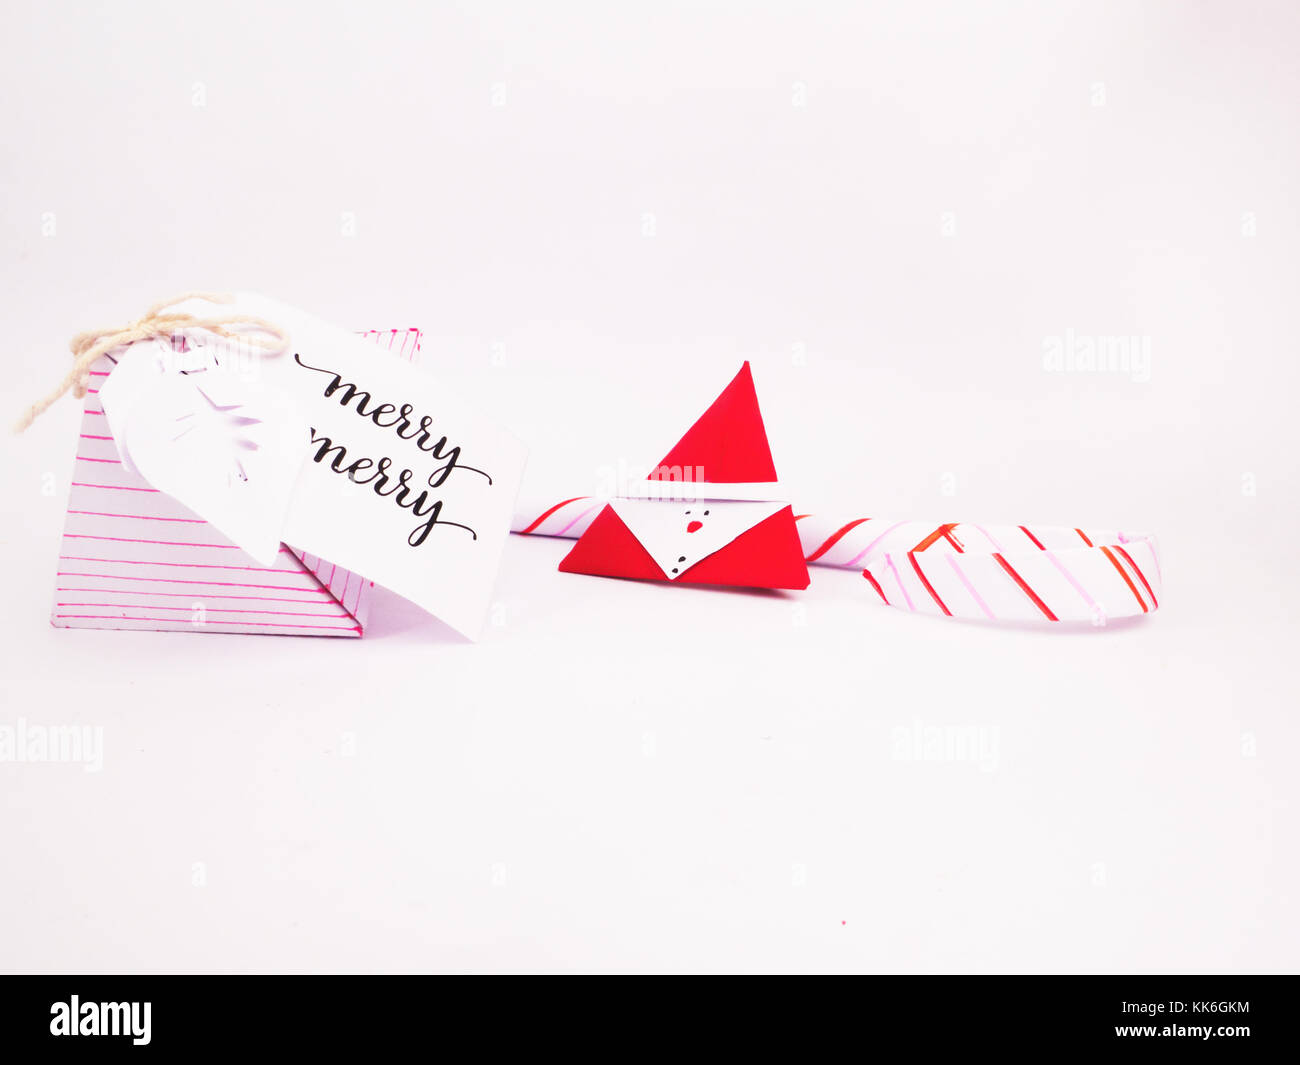 Flat Lay Christmas Decoration with diamond box and candy canes for holidays best background image for Holiday invitation - Stock Image